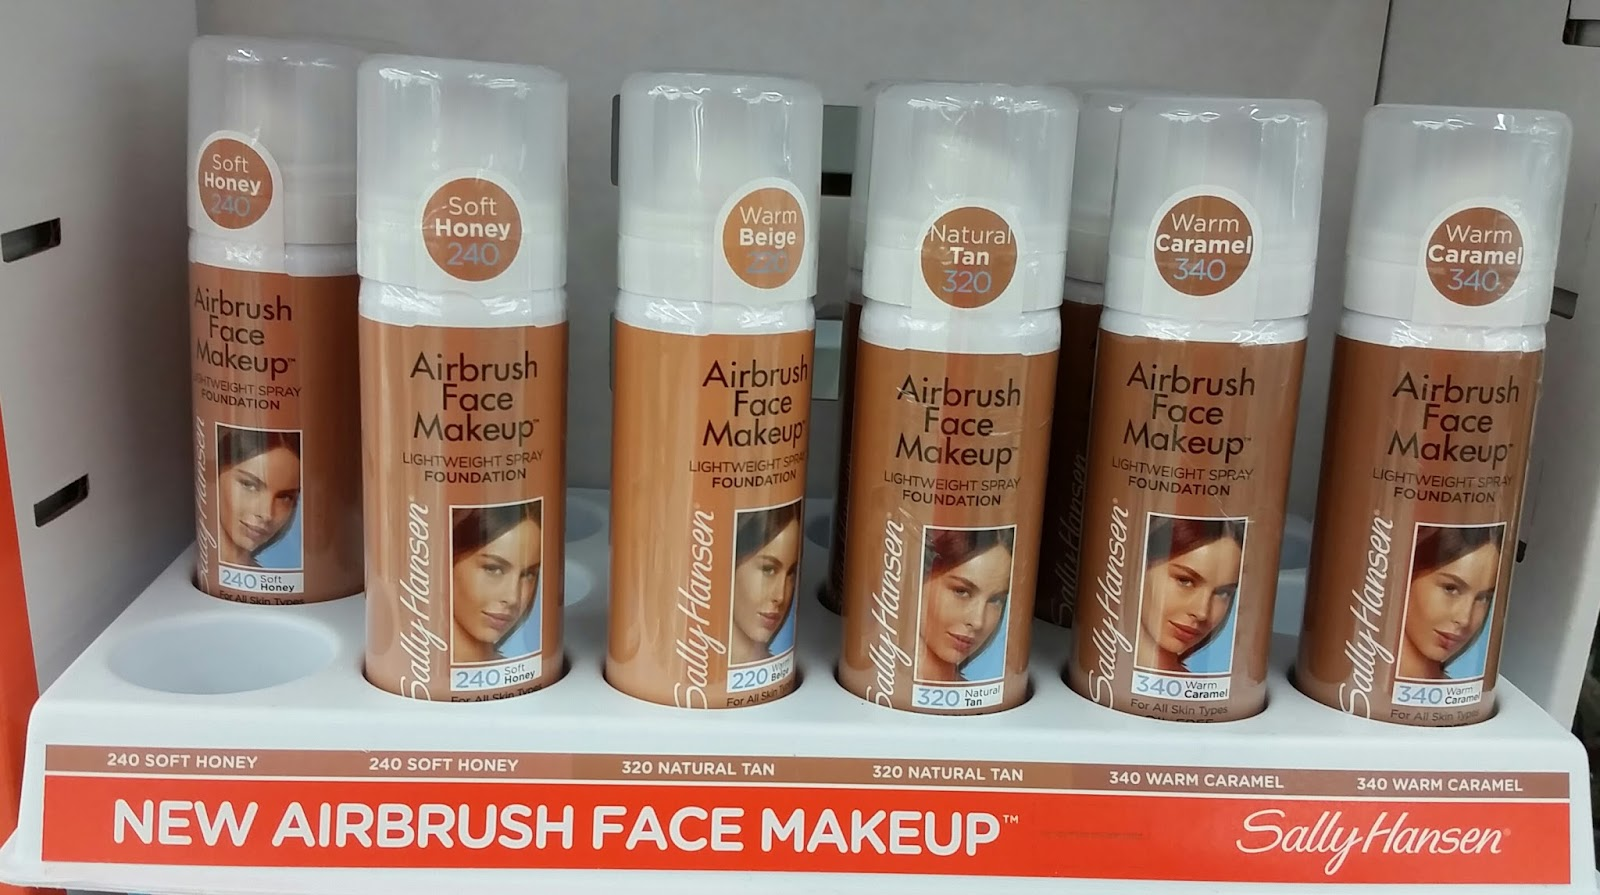 Sally hansen airbrush face makeup